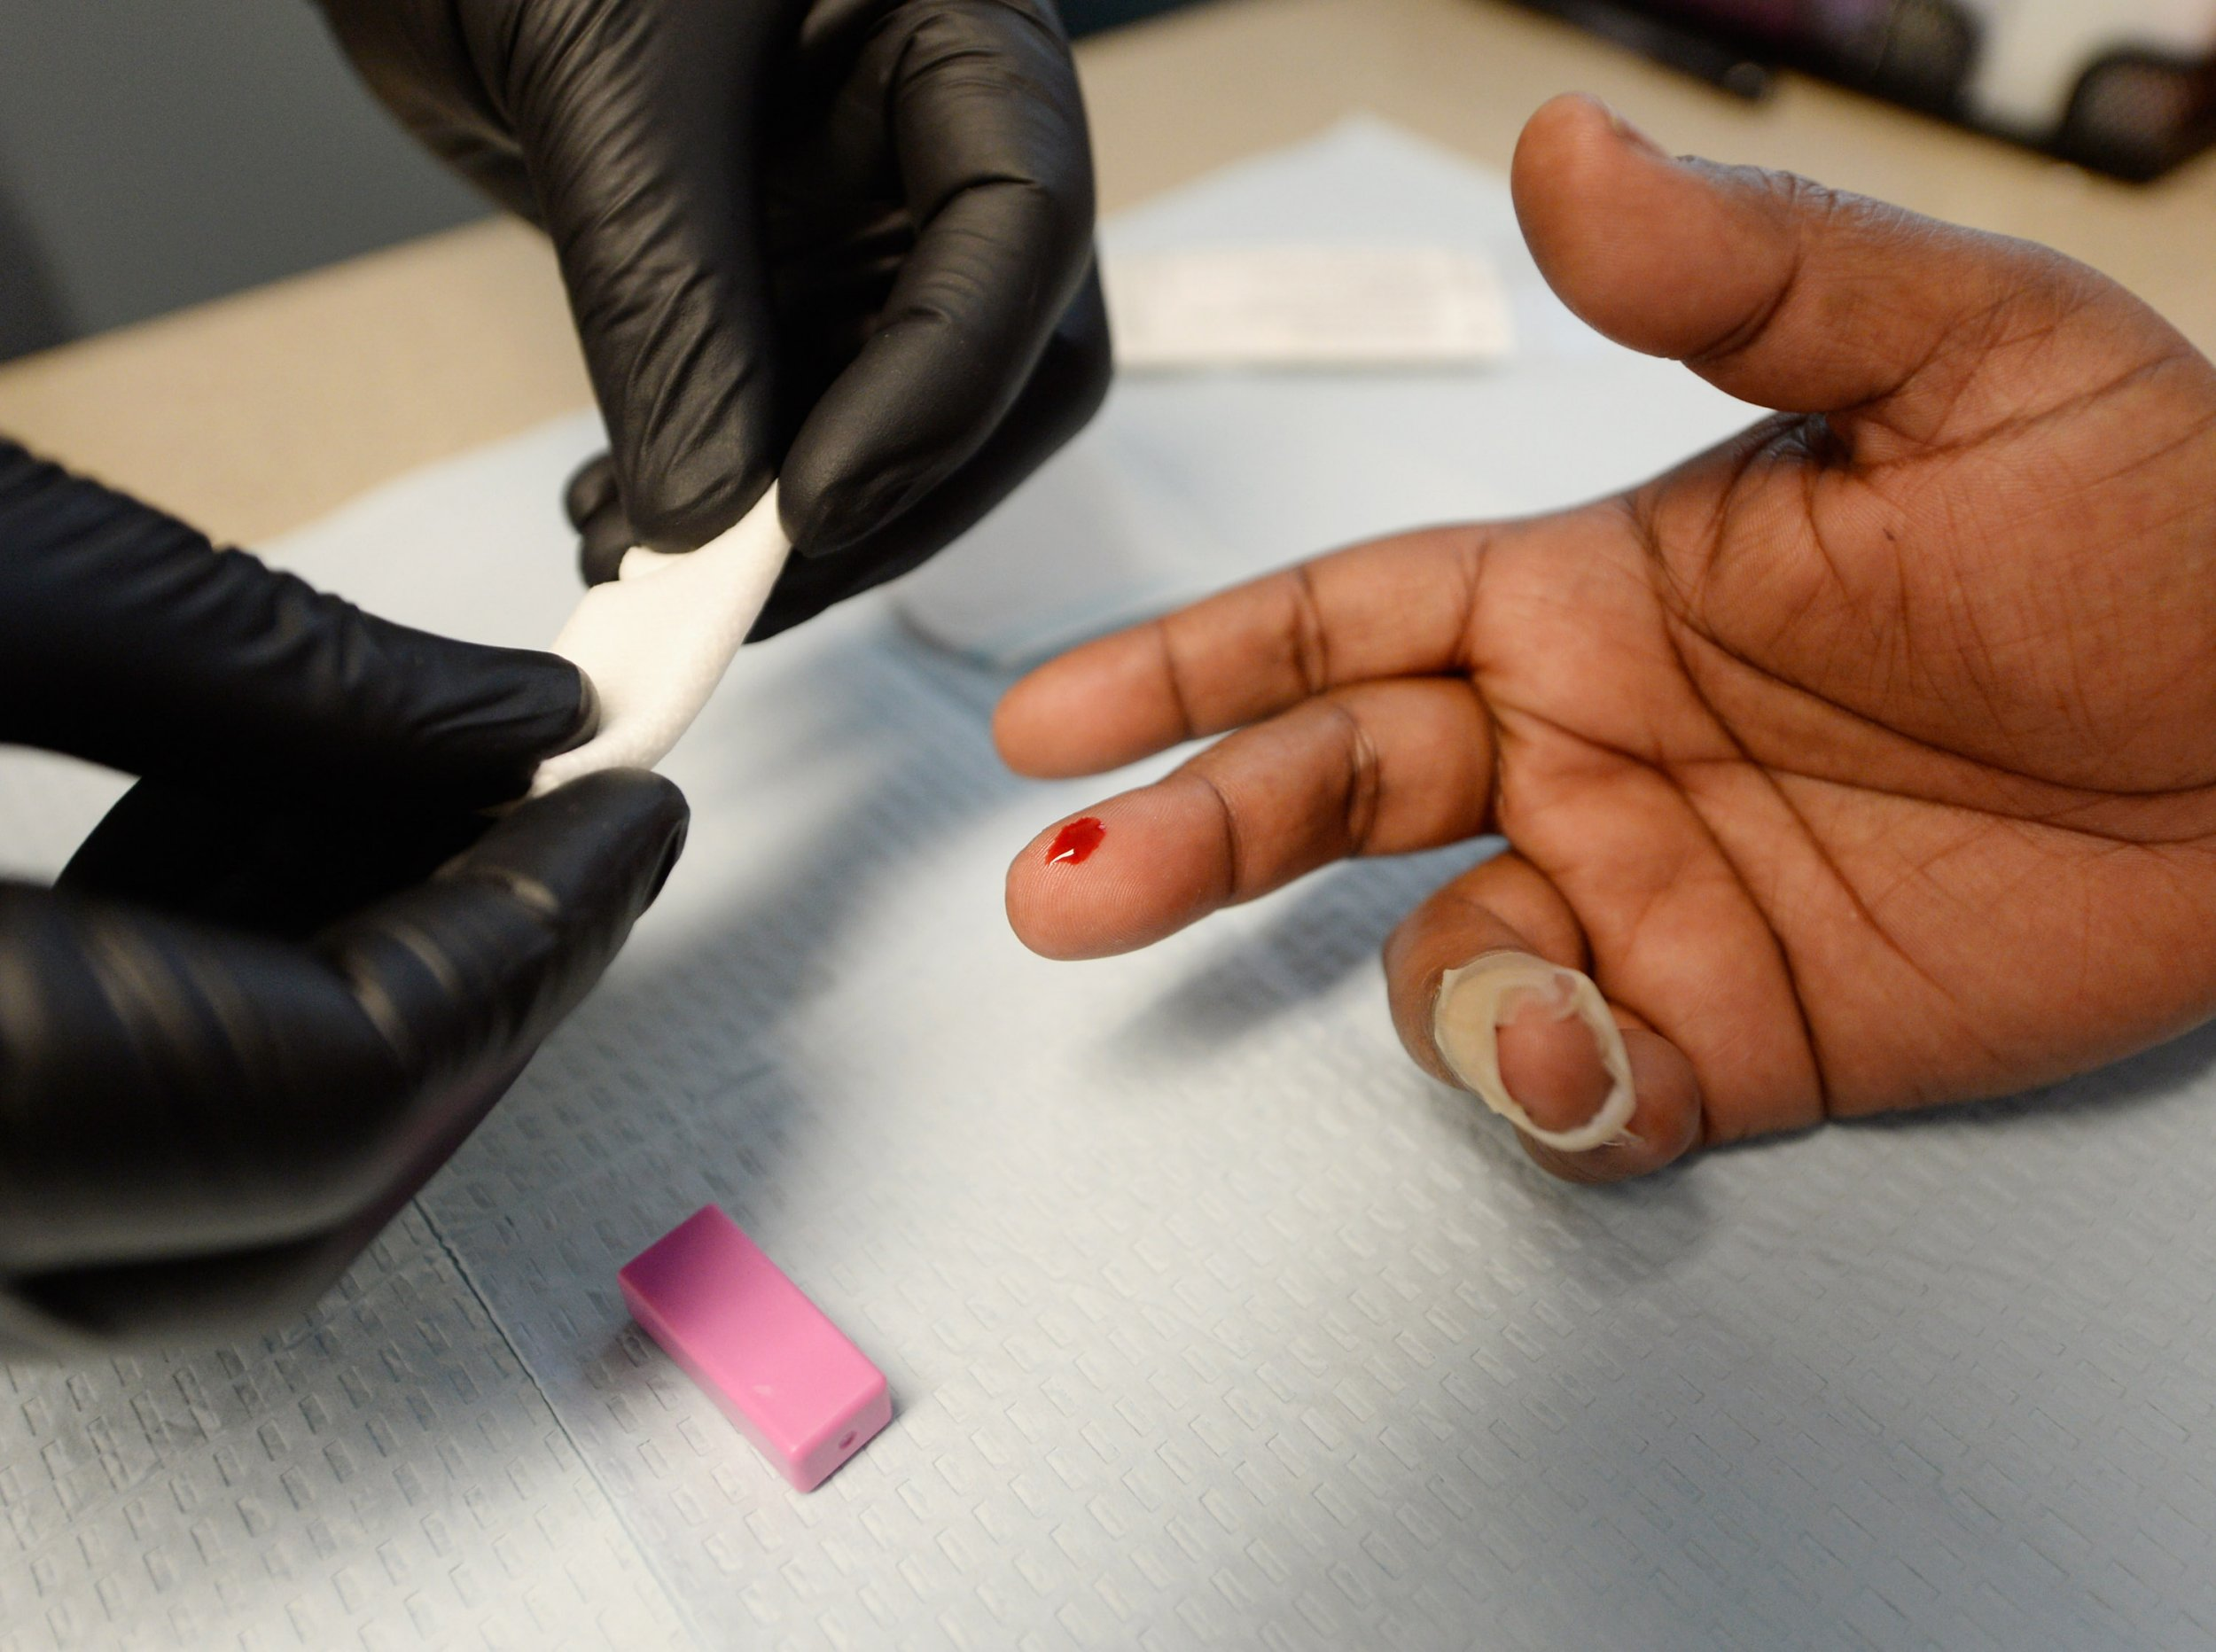 Whether you have gay sex or straight sex, you need to take an HIV test